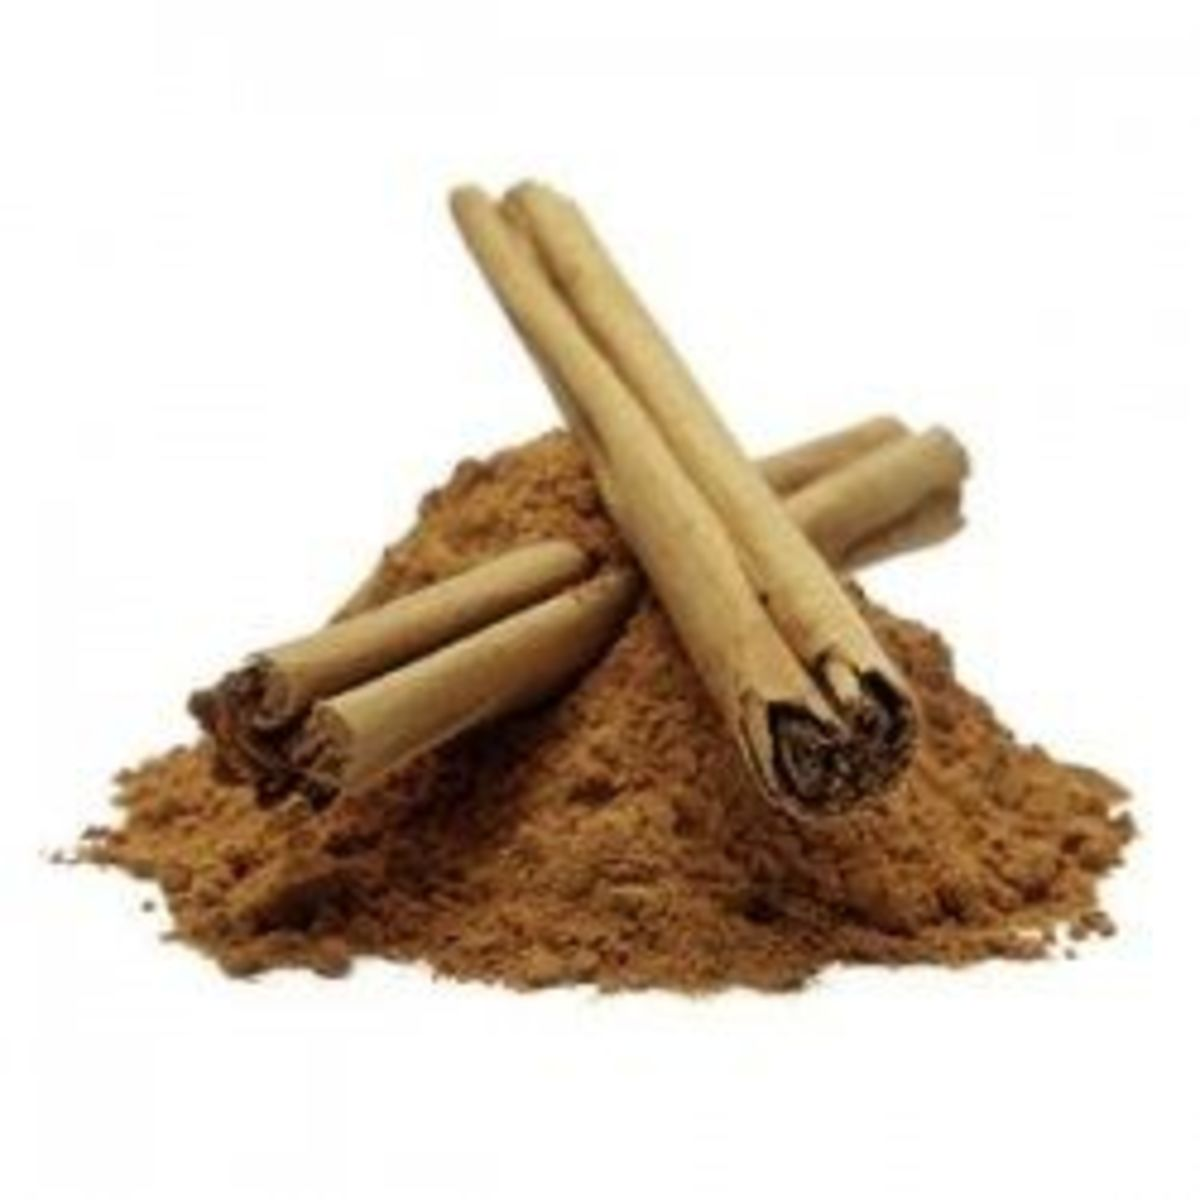 How to use cinnamon in HIV treatment